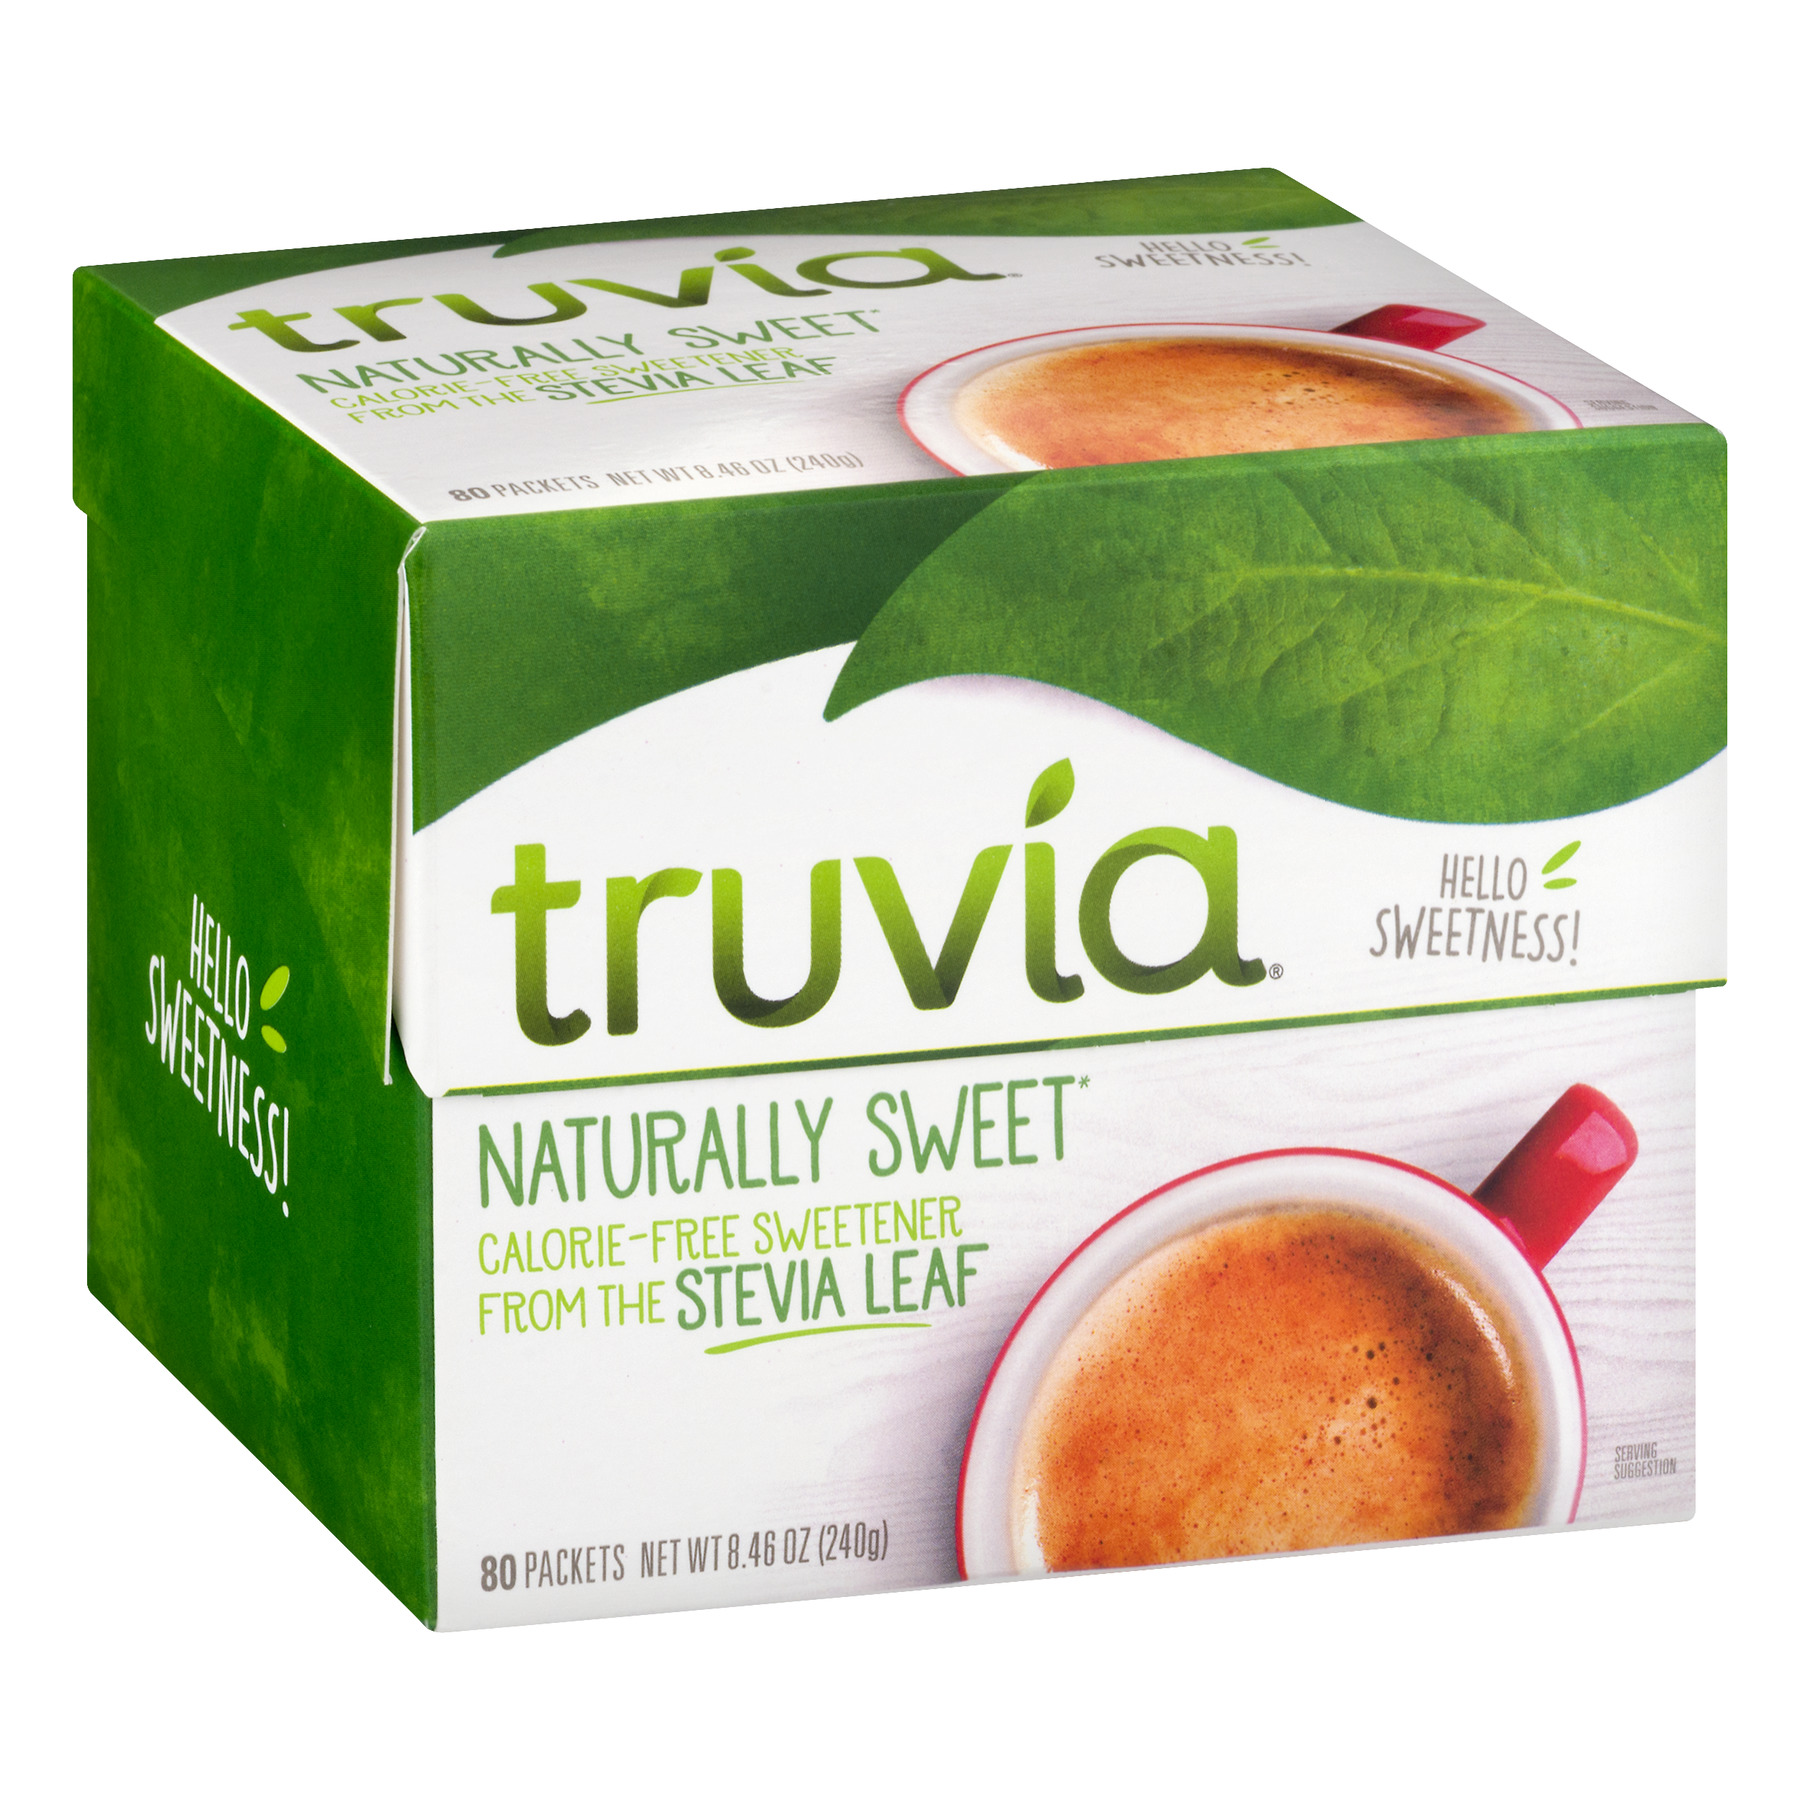 Truvia Cargill All Natural Sweetener Packets, 80 / Box (Quantity)